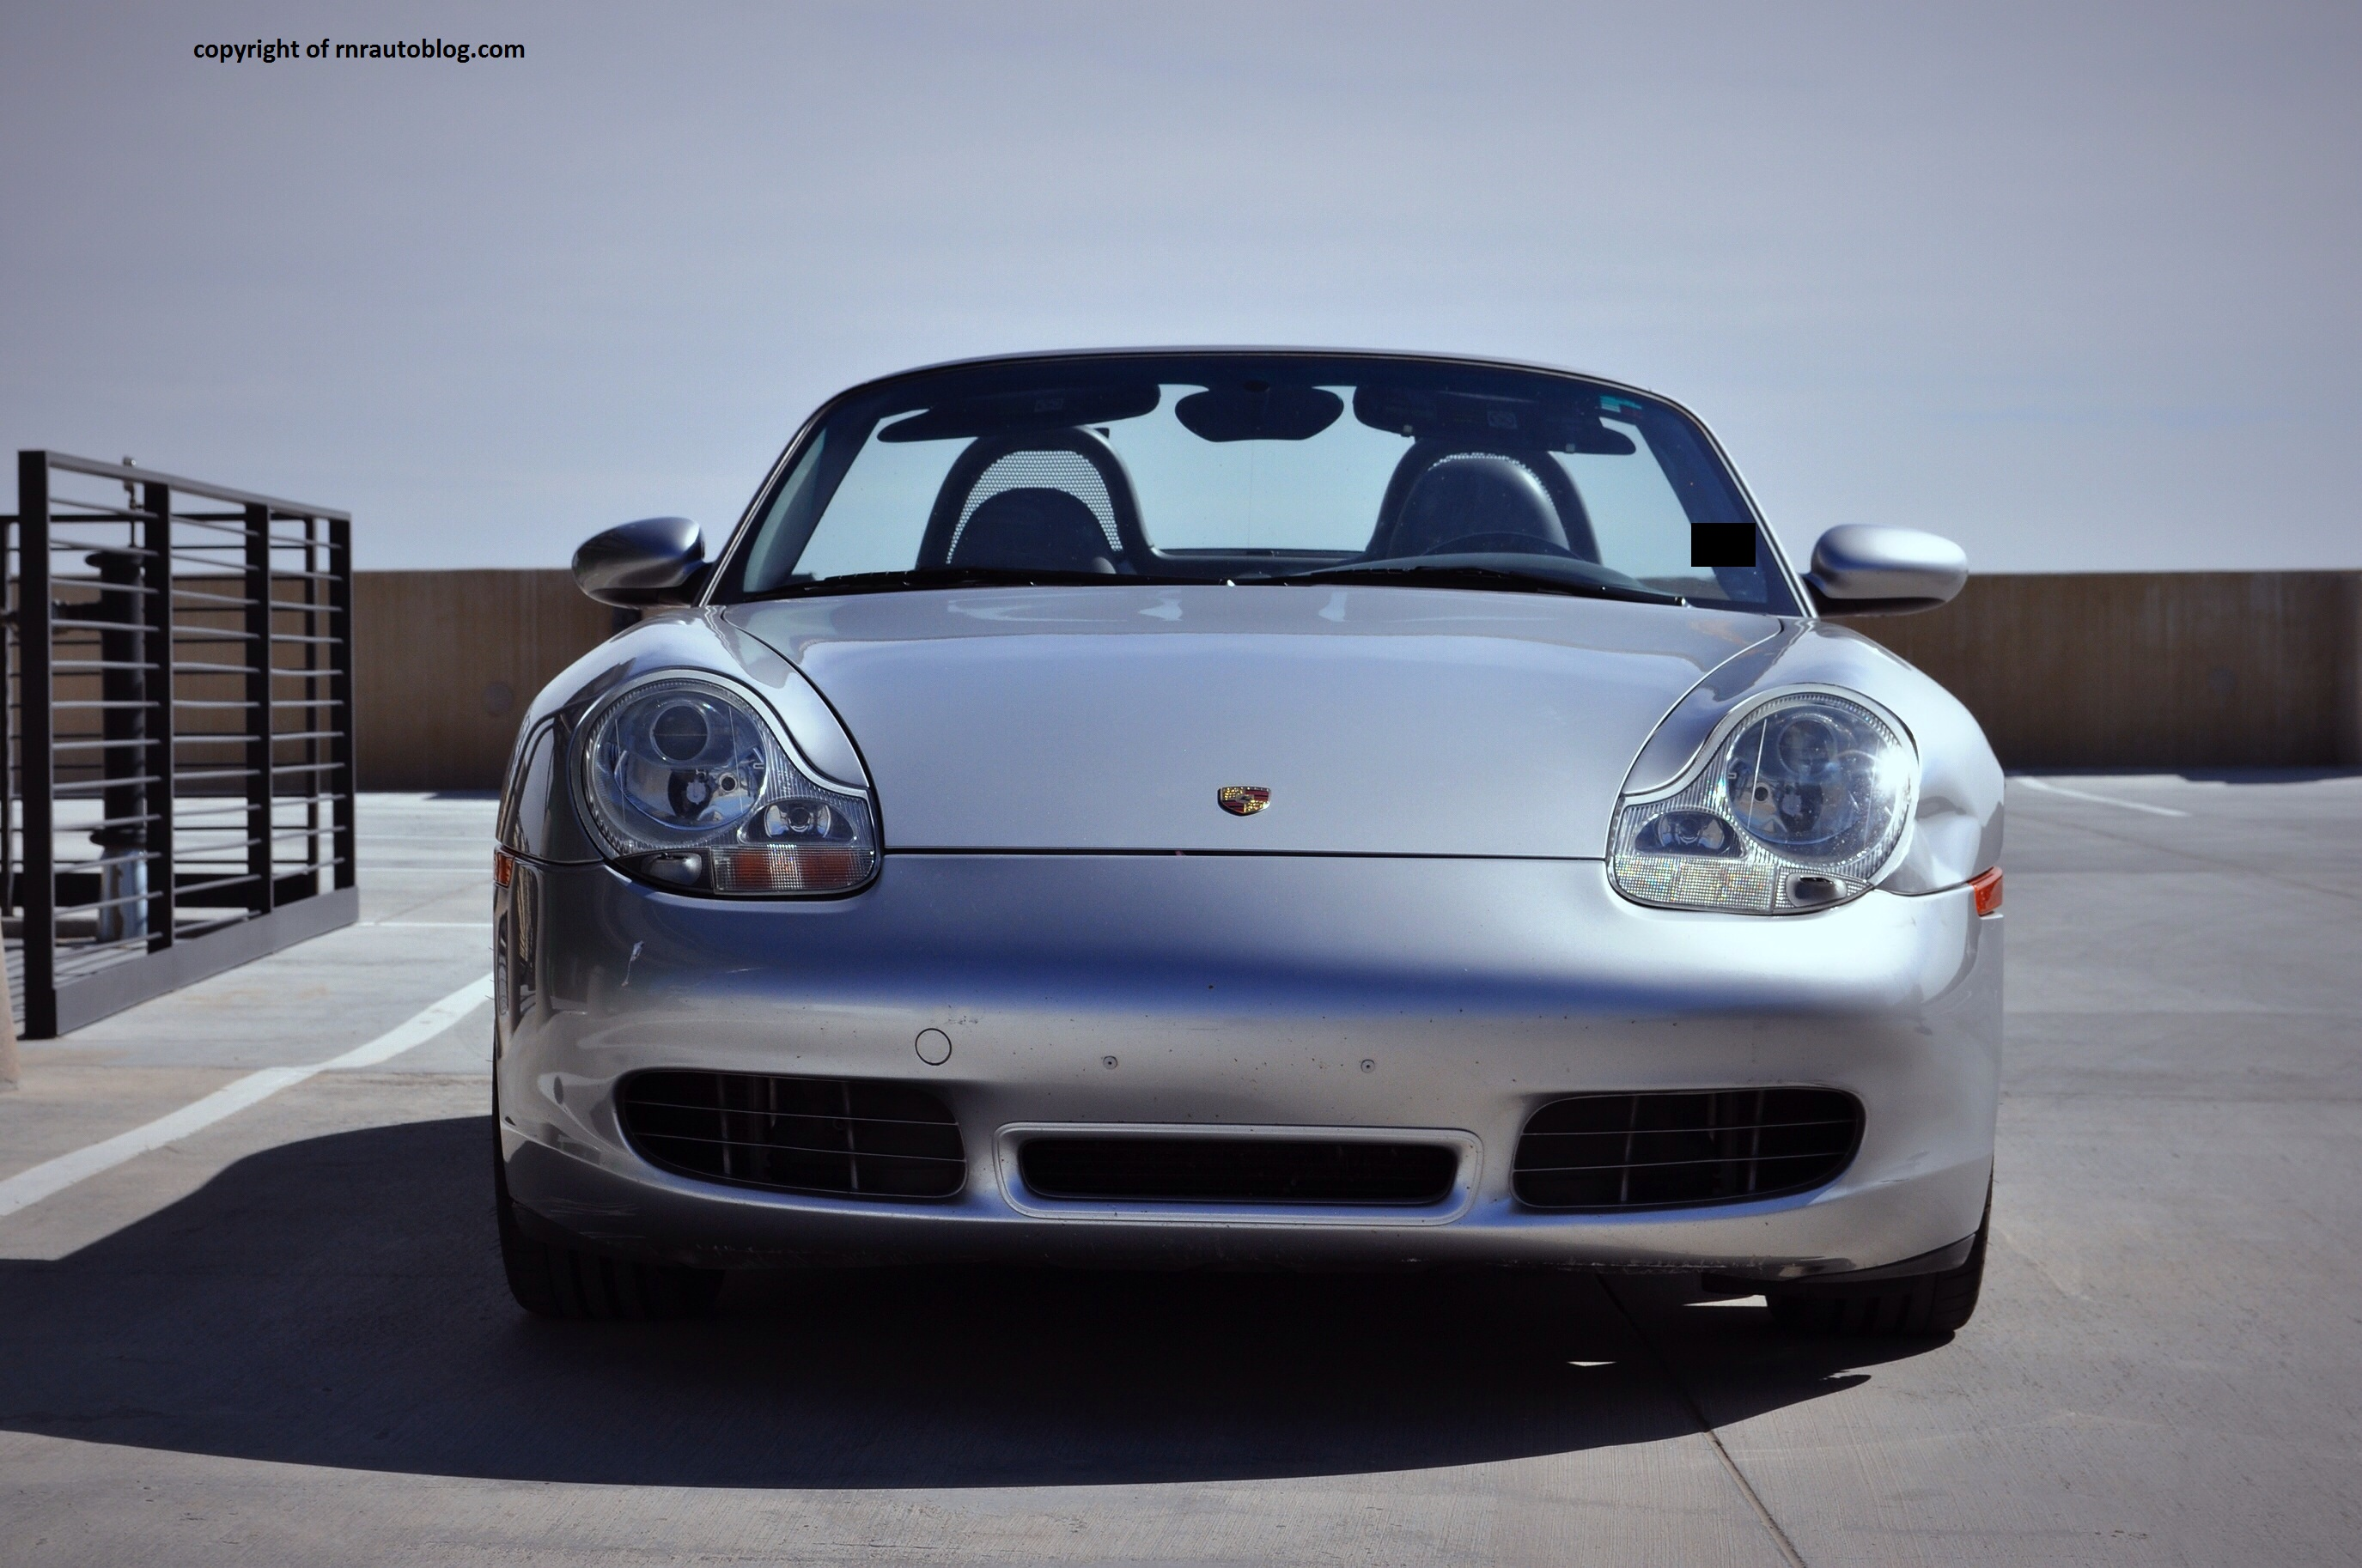 2001 Porsche Boxster S Review Rnr Automotive Blog